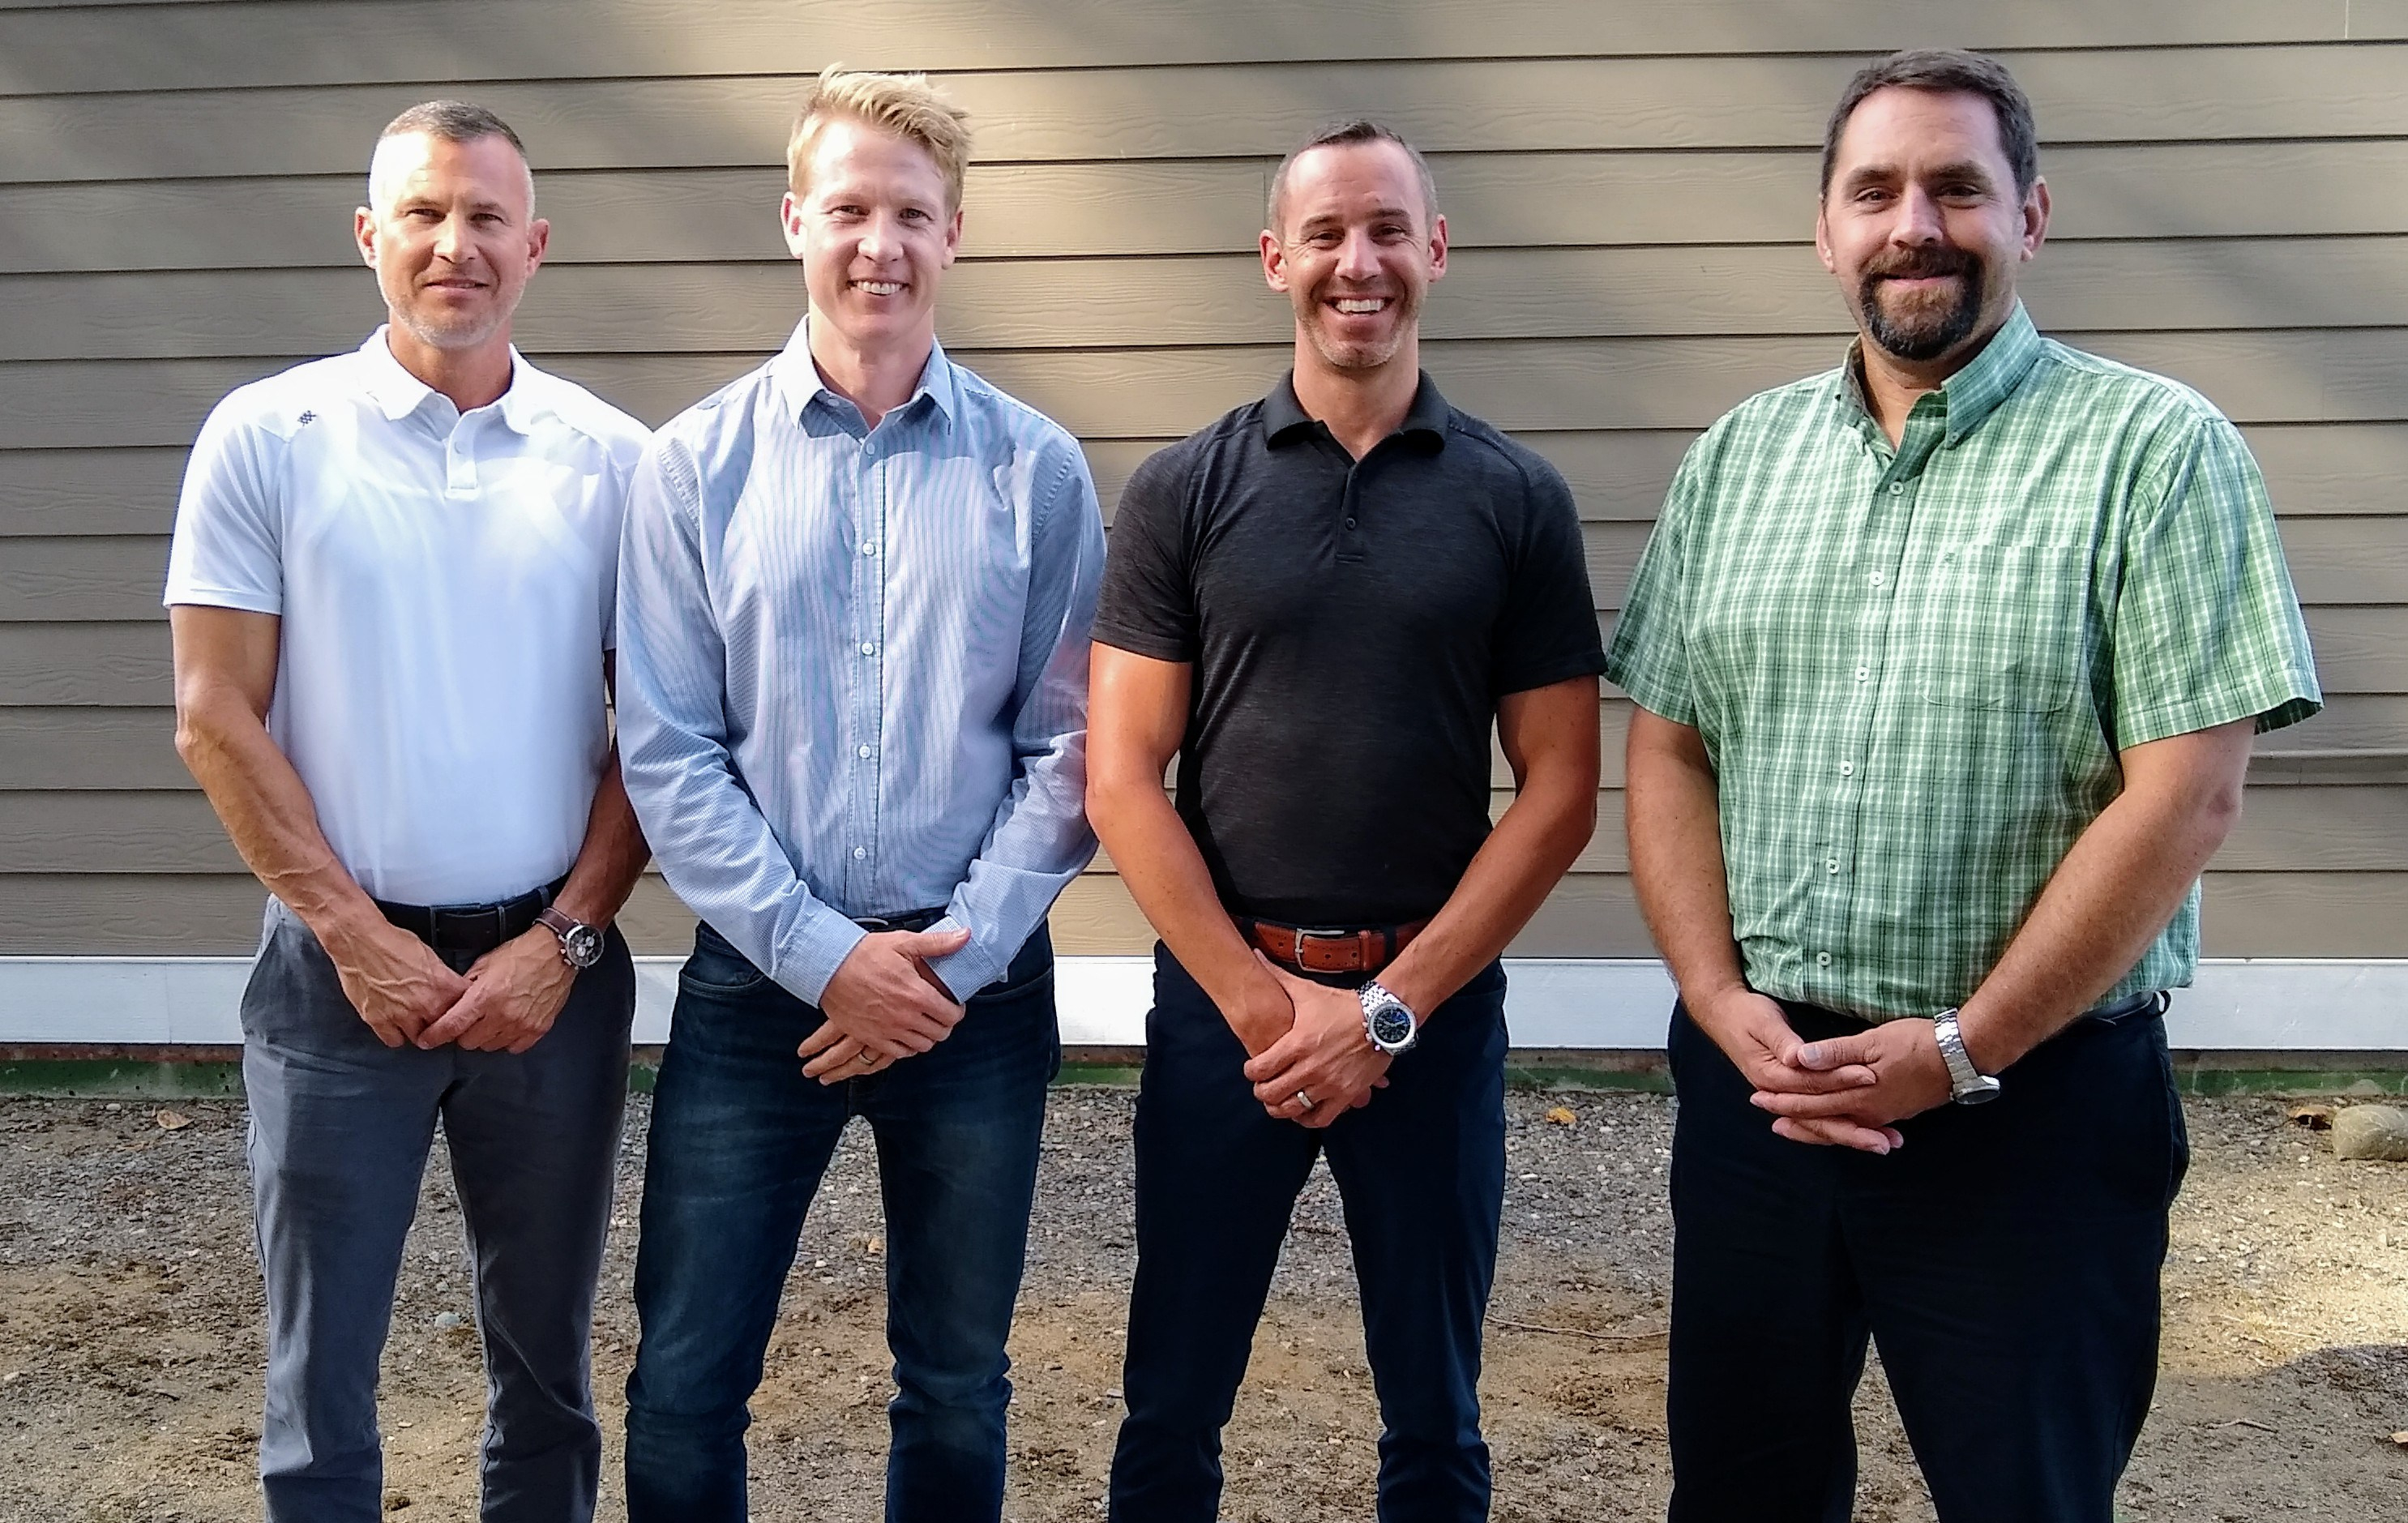 GreenEarth Landscape Services co-owners – from left, Shawn Knight, Isaac Burrous, Jeremy Durgan and David Arnold